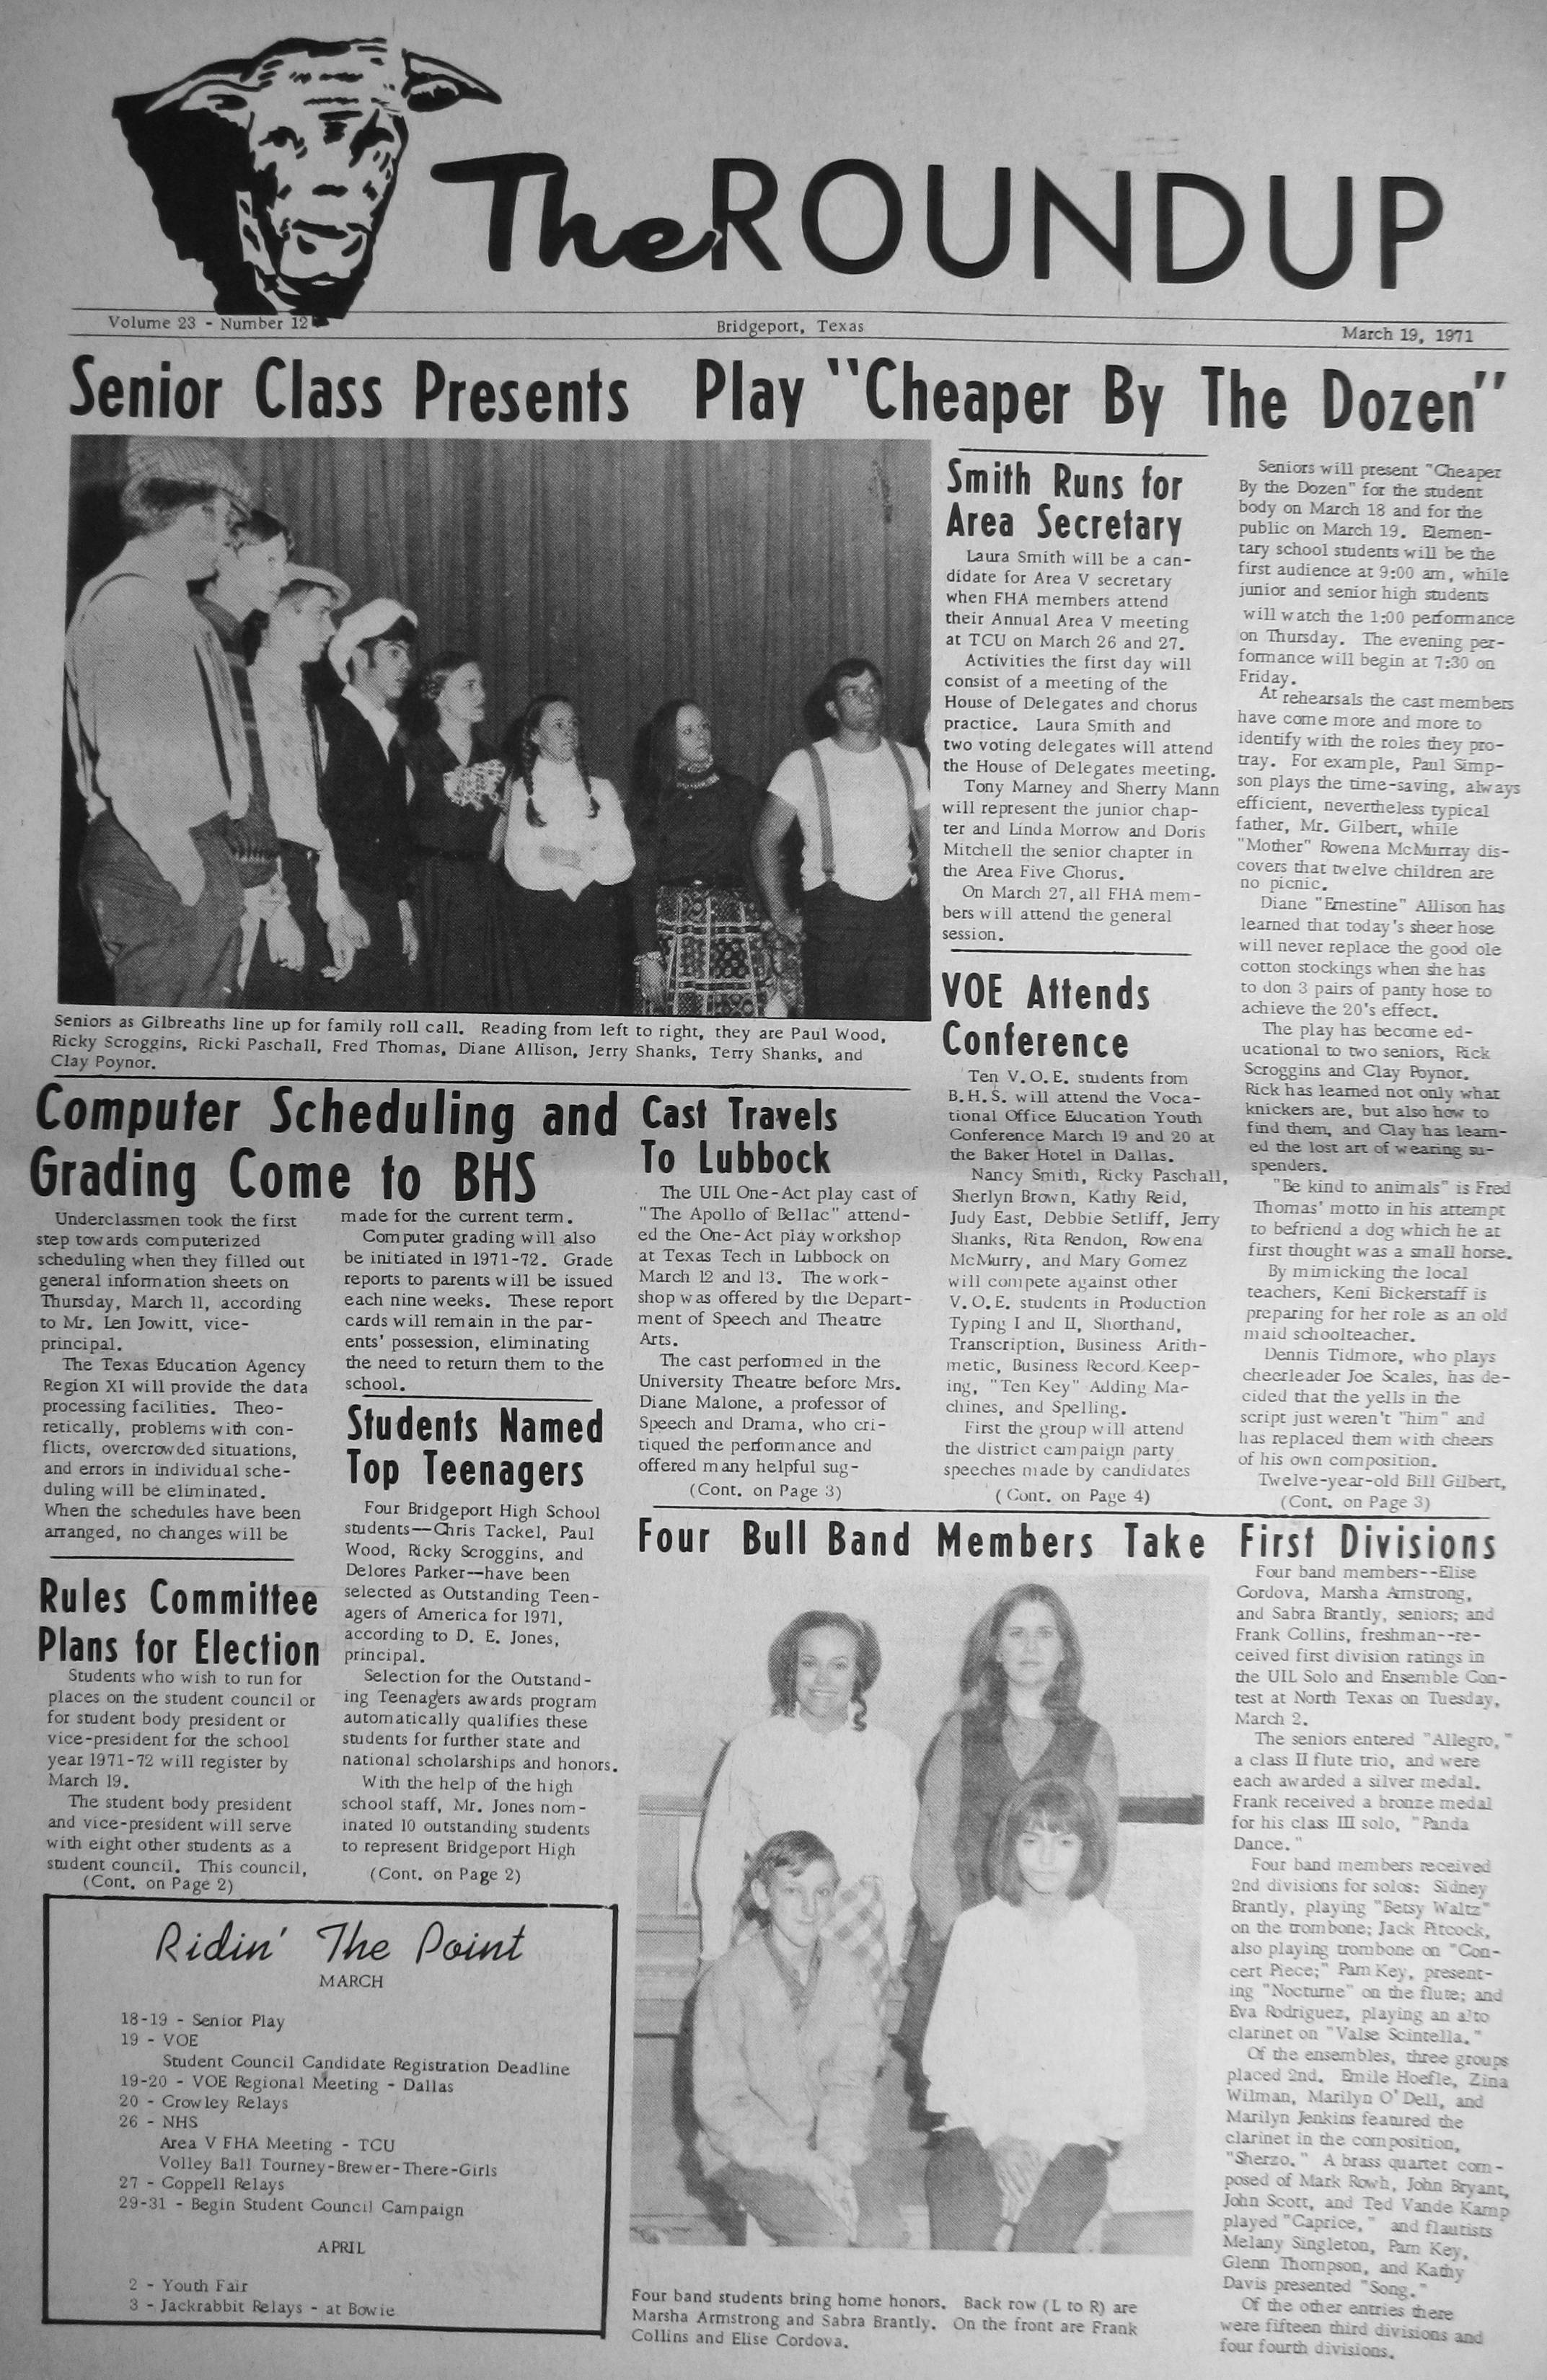 index of s a l from the 1971 bridgeport index newspaper cook robert leslie sharon gwen shackelford wedding 1971 03 26 pg17